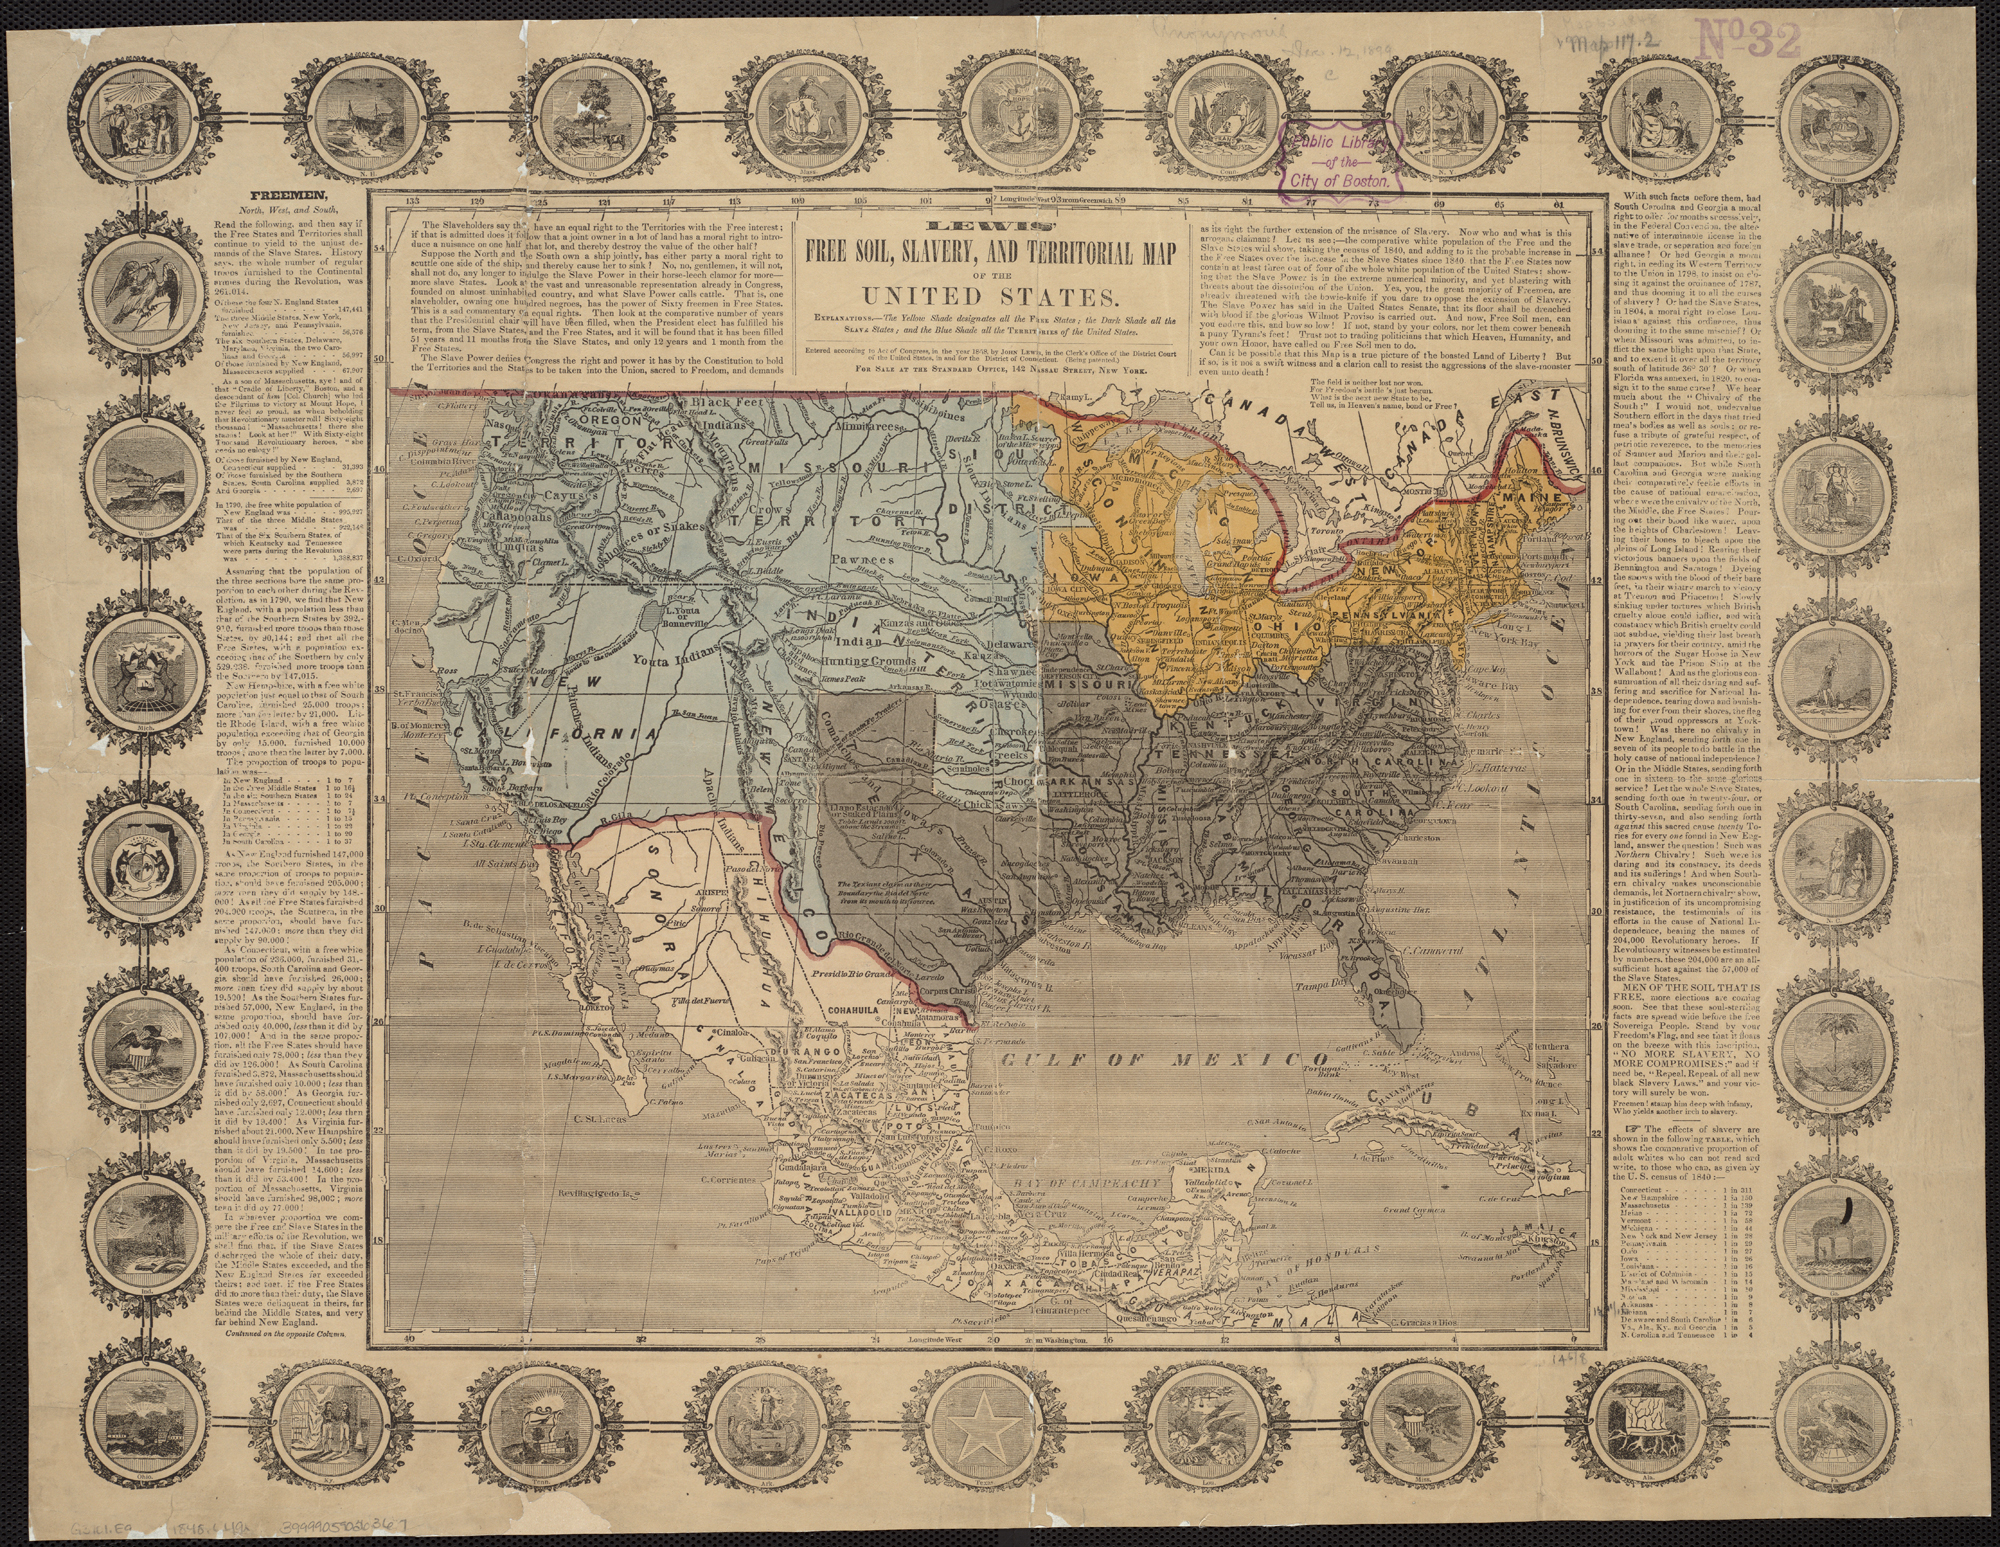 FileLewis Free Soil Slavery And Territorial Map Of The United - Free paper us map